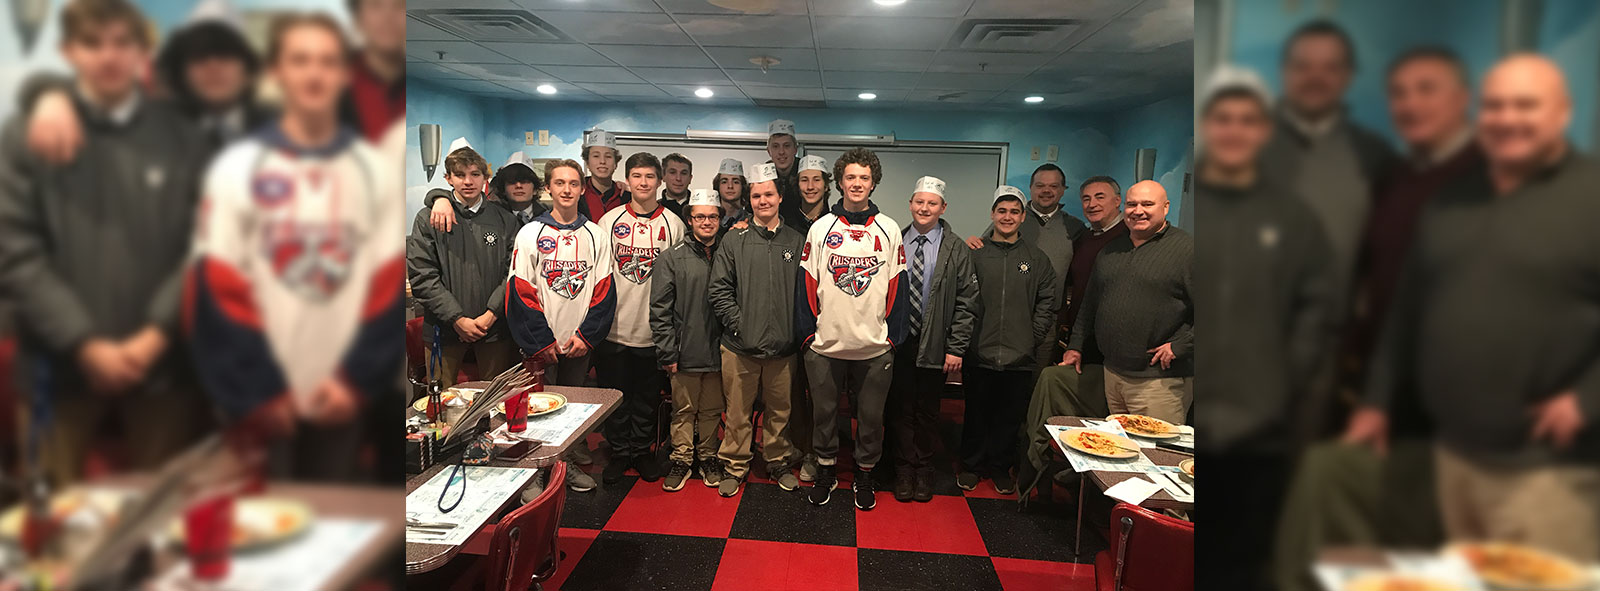 hockey team group photo for spaghetti dinner benefit